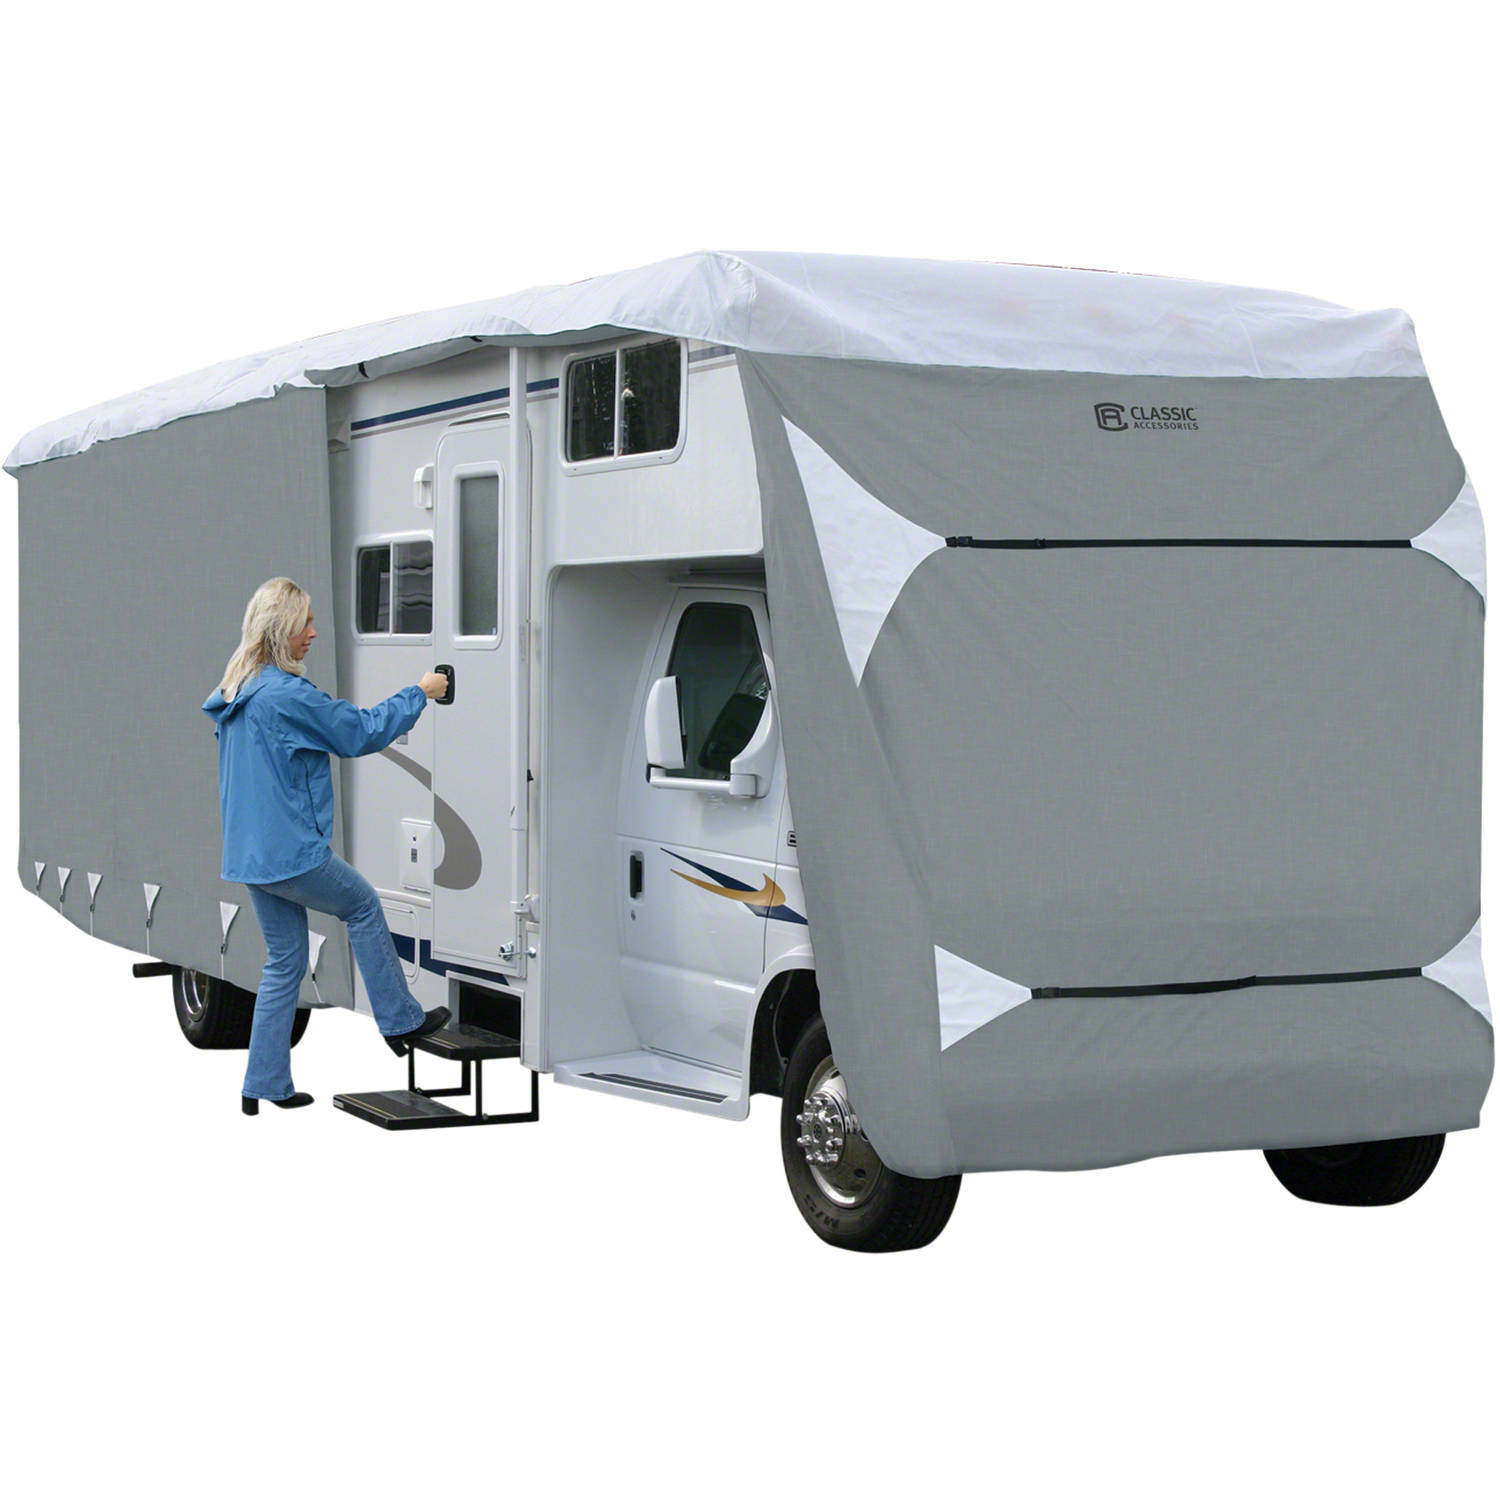 Classic Accessories PolyPRO 3 Class C RV Storage Cover, Grey